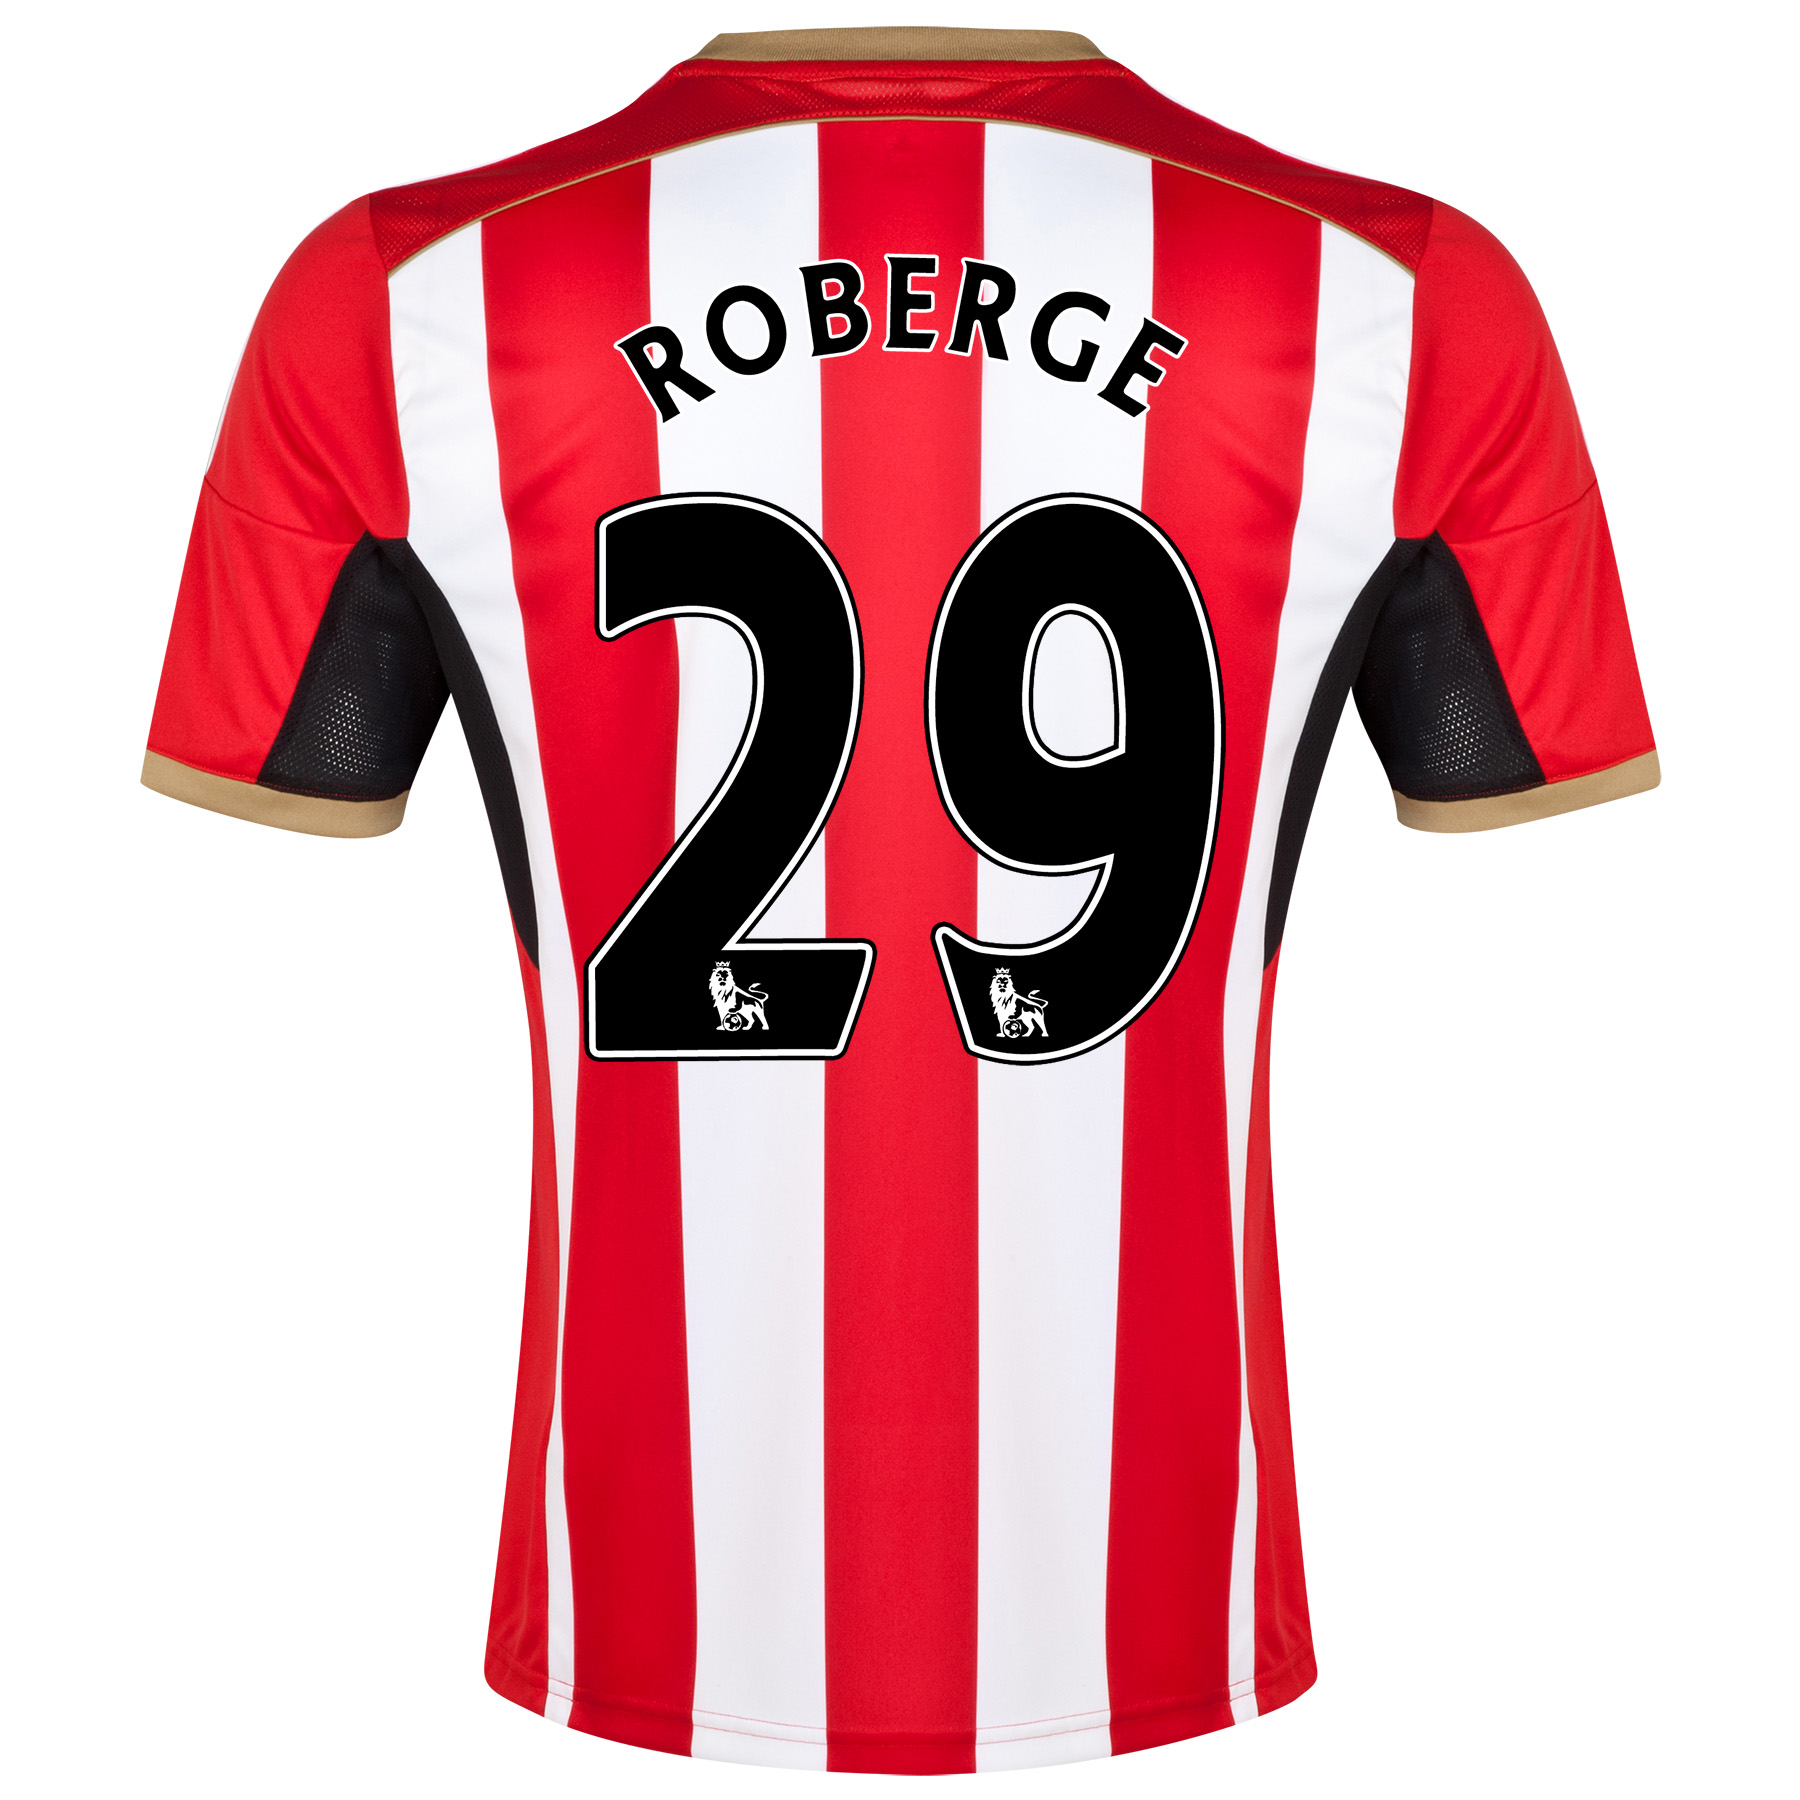 Sunderland Home Shirt 2014/15 Red with Roberge 29 printing